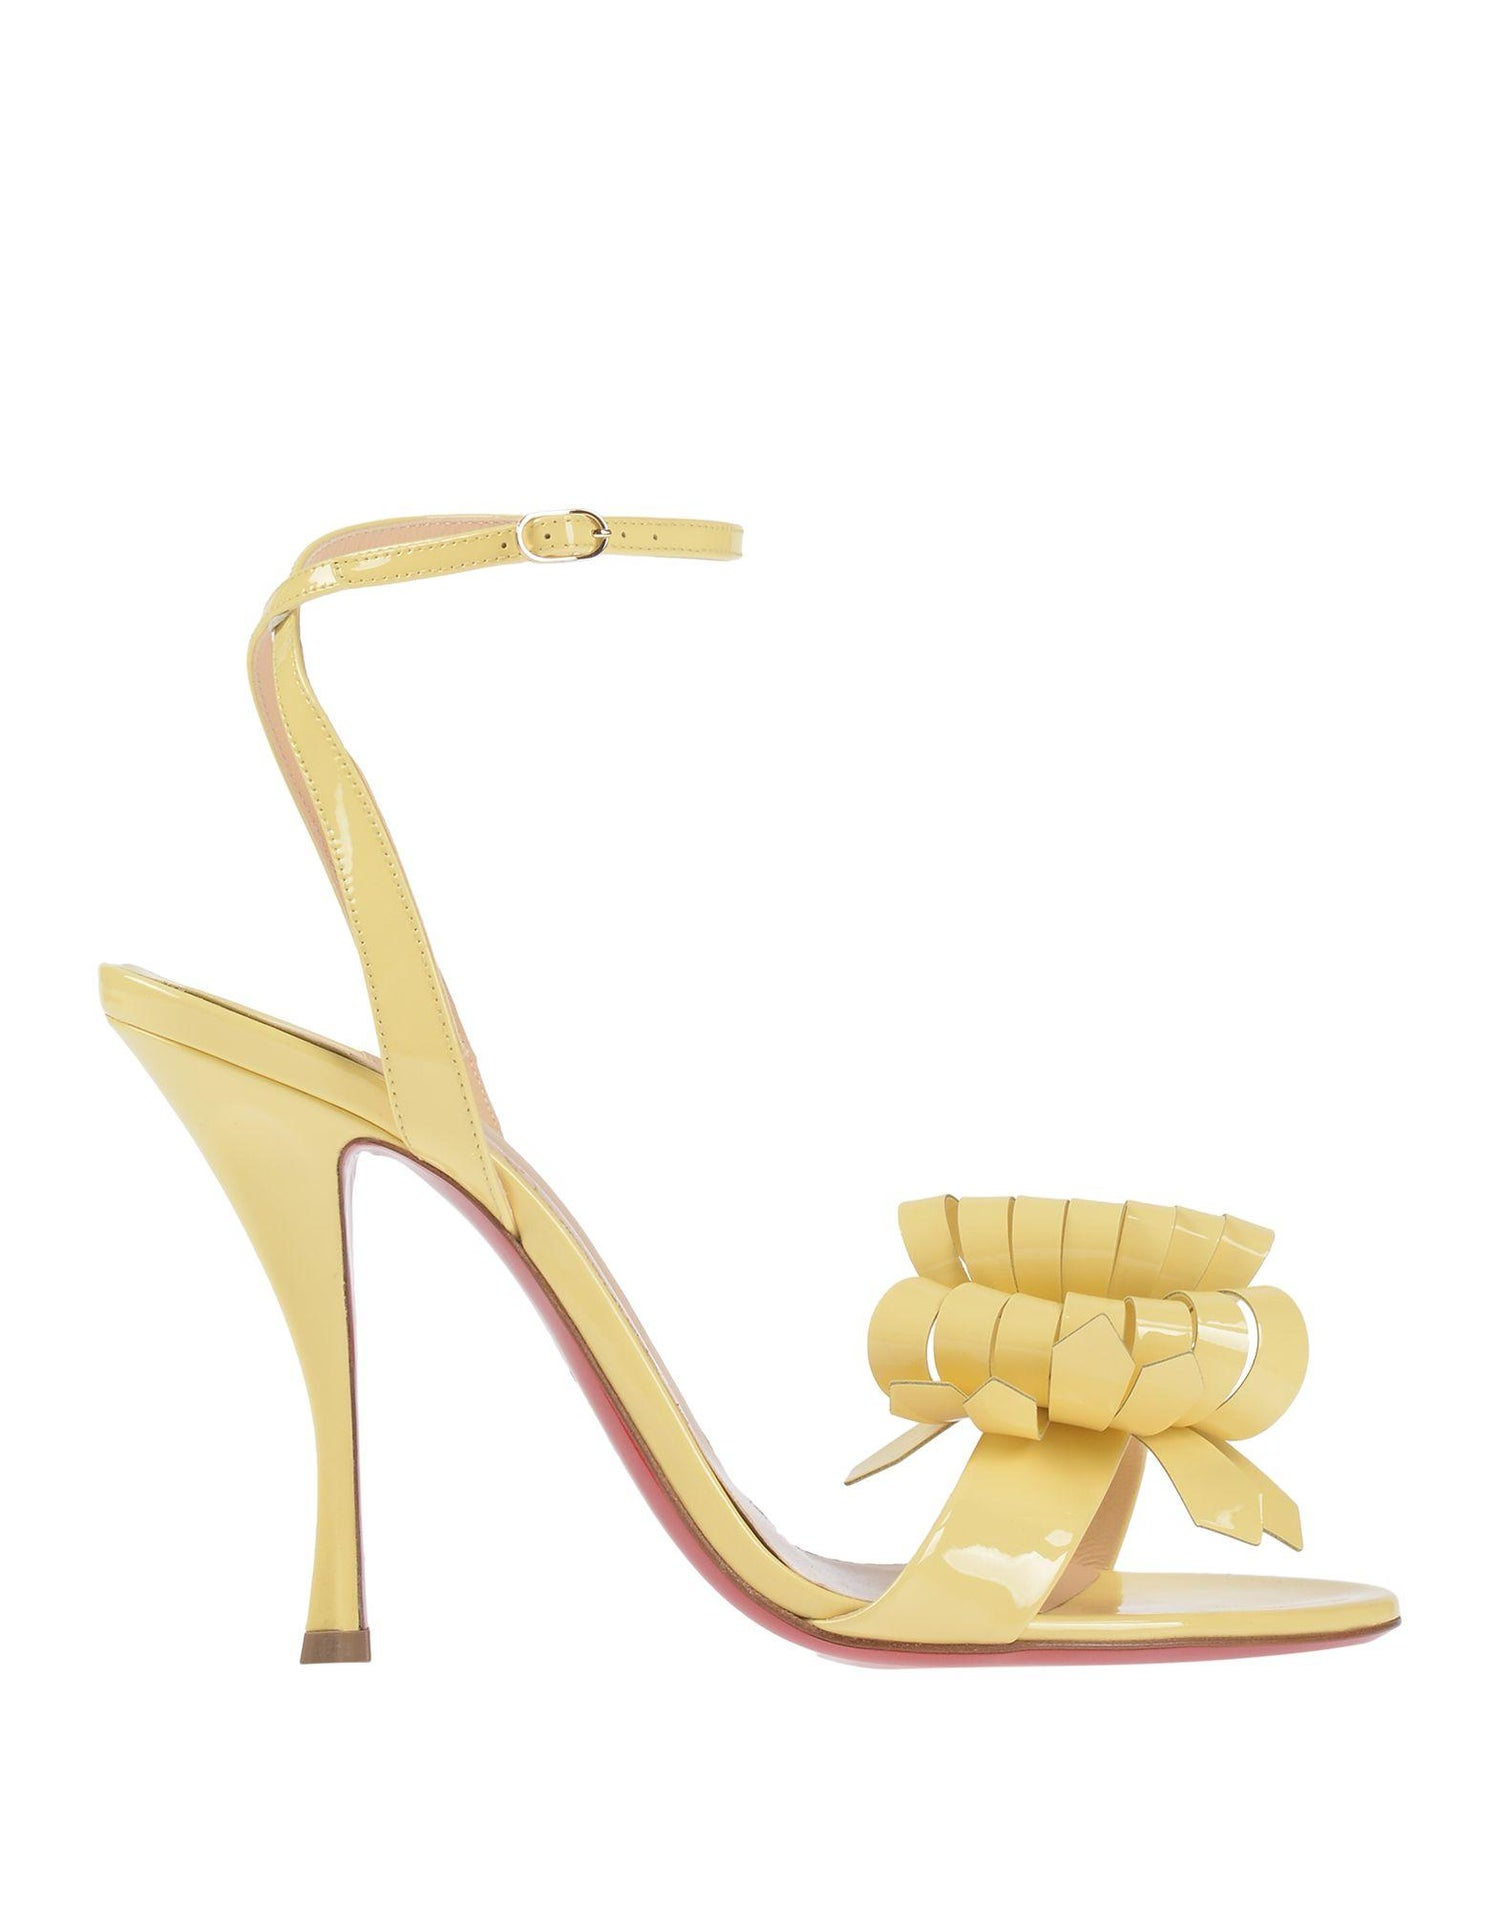 2be2d59565a Christian Louboutin NEW Yellow Patent Bow Evening Sandals Heels in Box